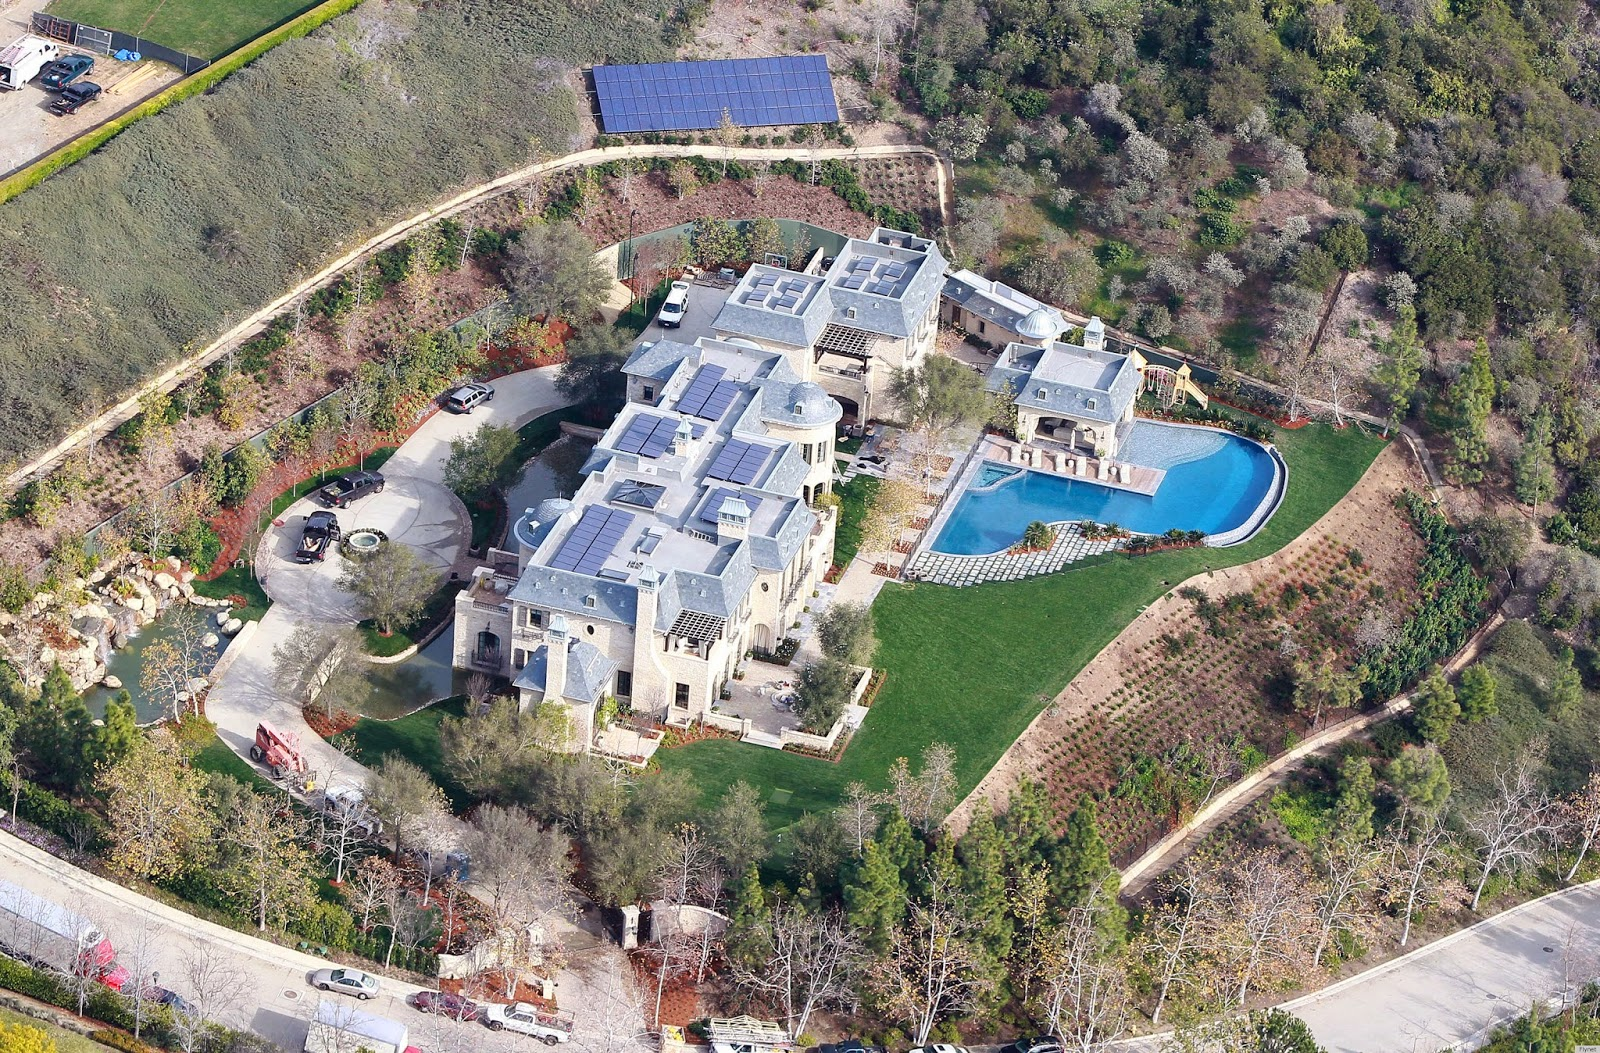 Gisele Bundchen & Tom Brady's Brentwood Solar Mansion Sold to Dr. Dre